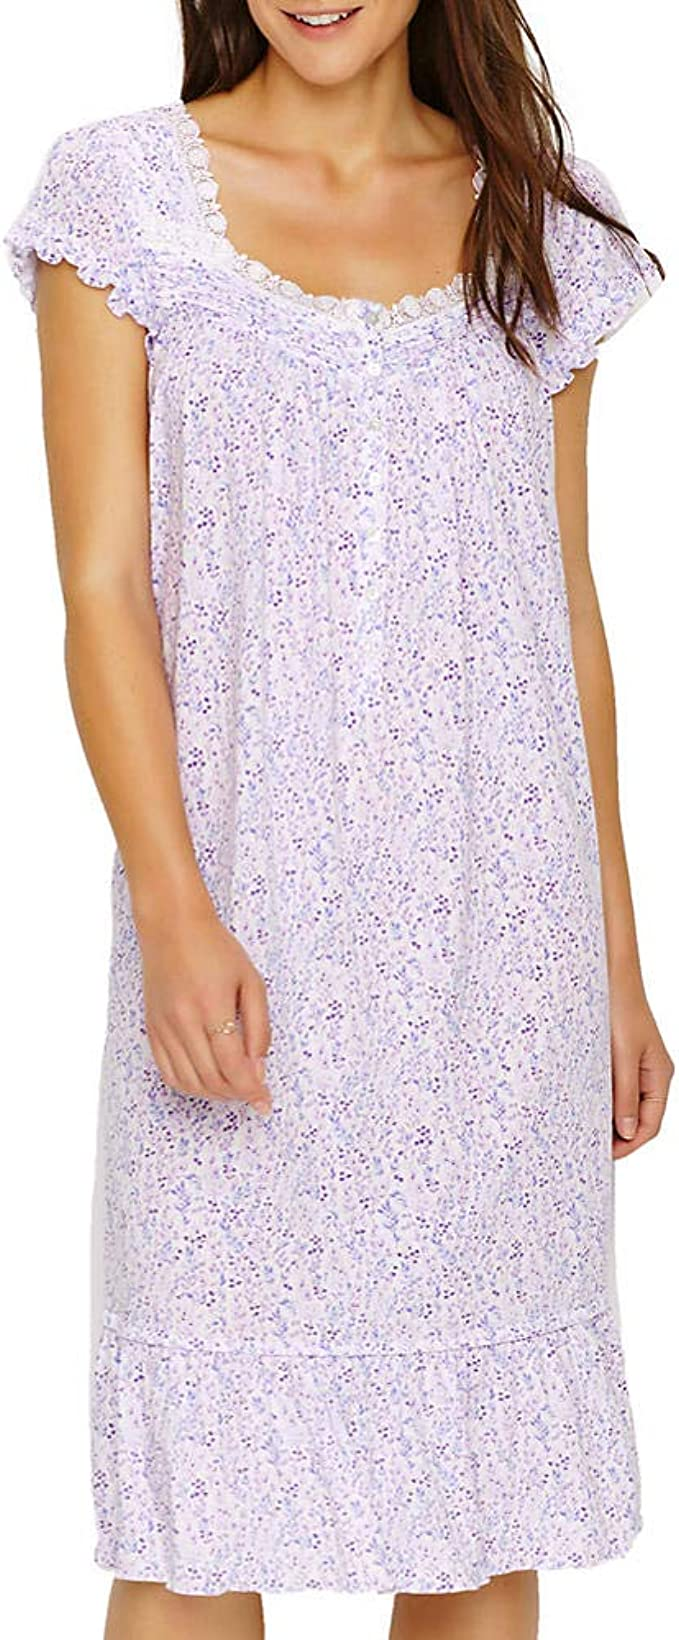 Eileen west nightgown XLarge  Cotton  Modal  Blend Lilac White